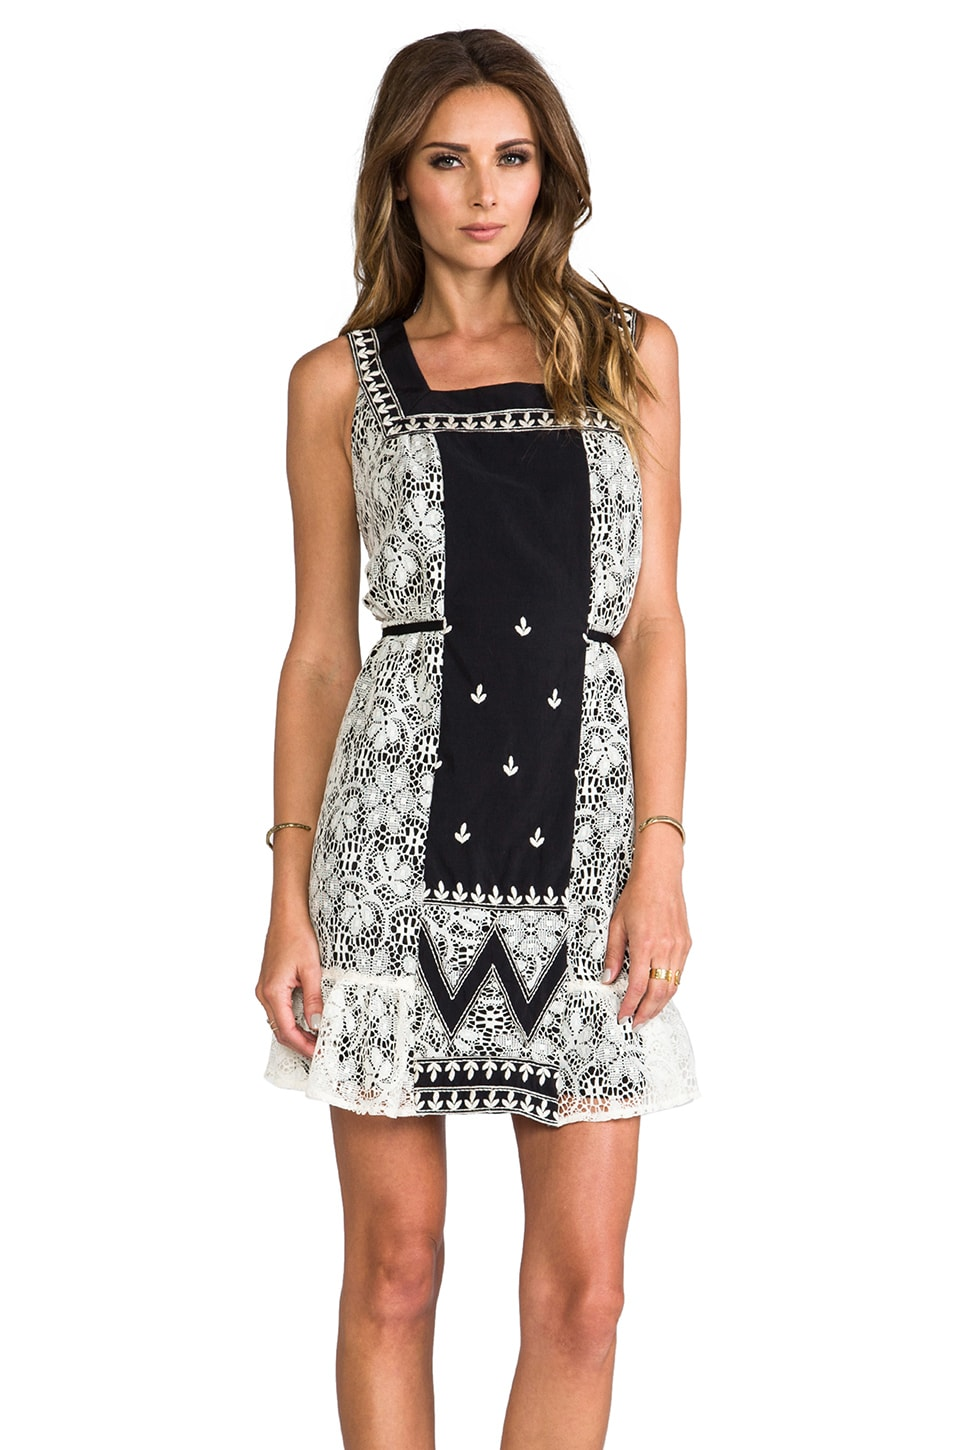 Anna Sui Zig Zag Applique Dress in Black